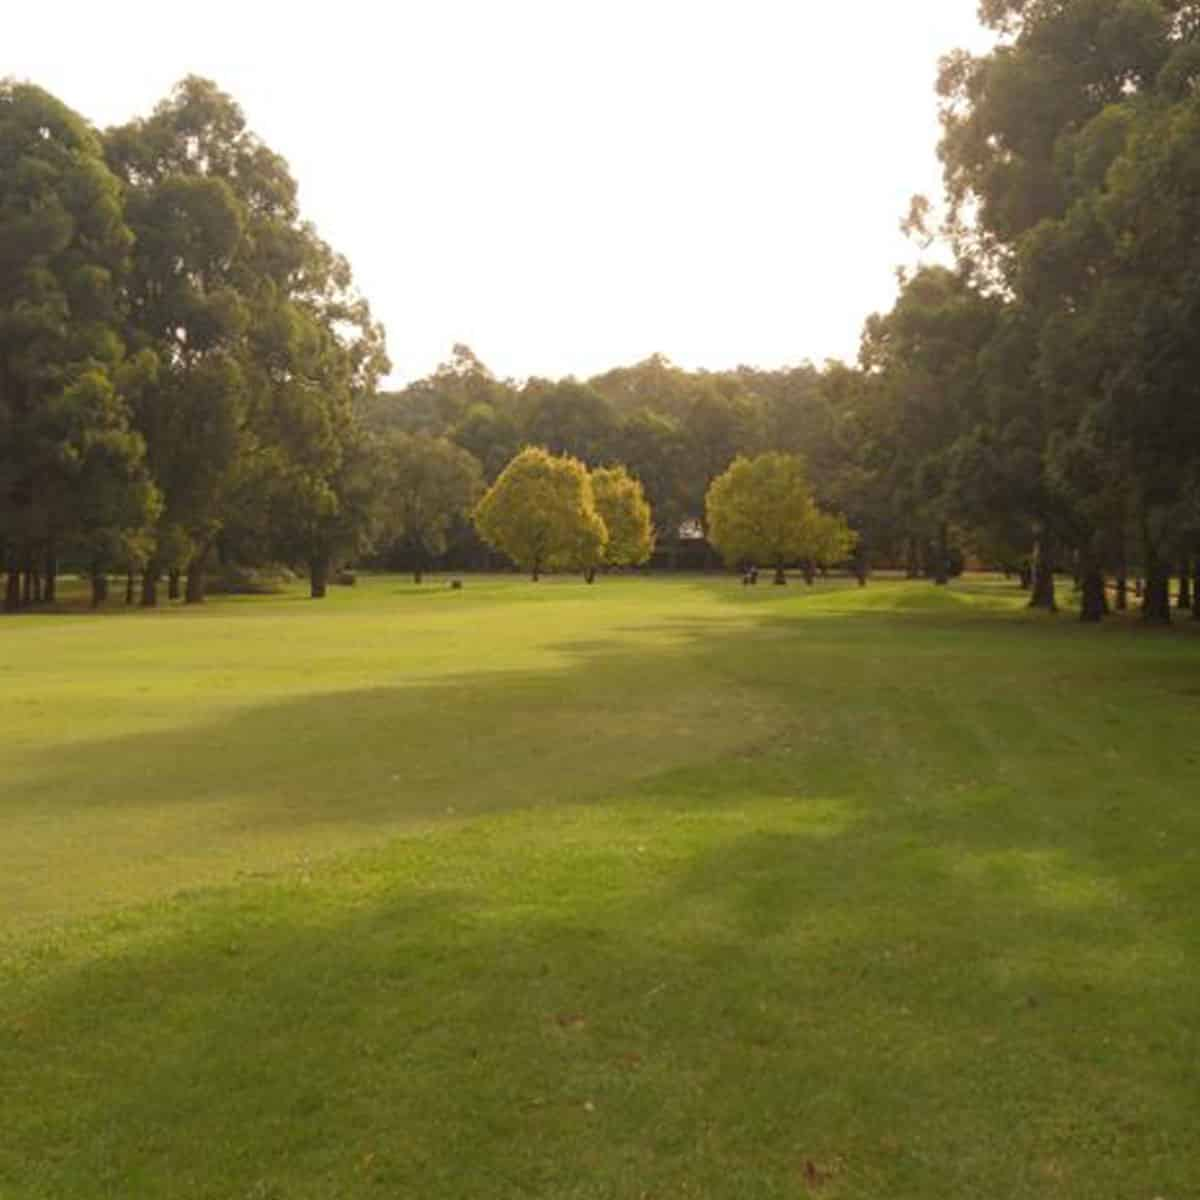 Scenery of the golf course at Leonay Golf Club